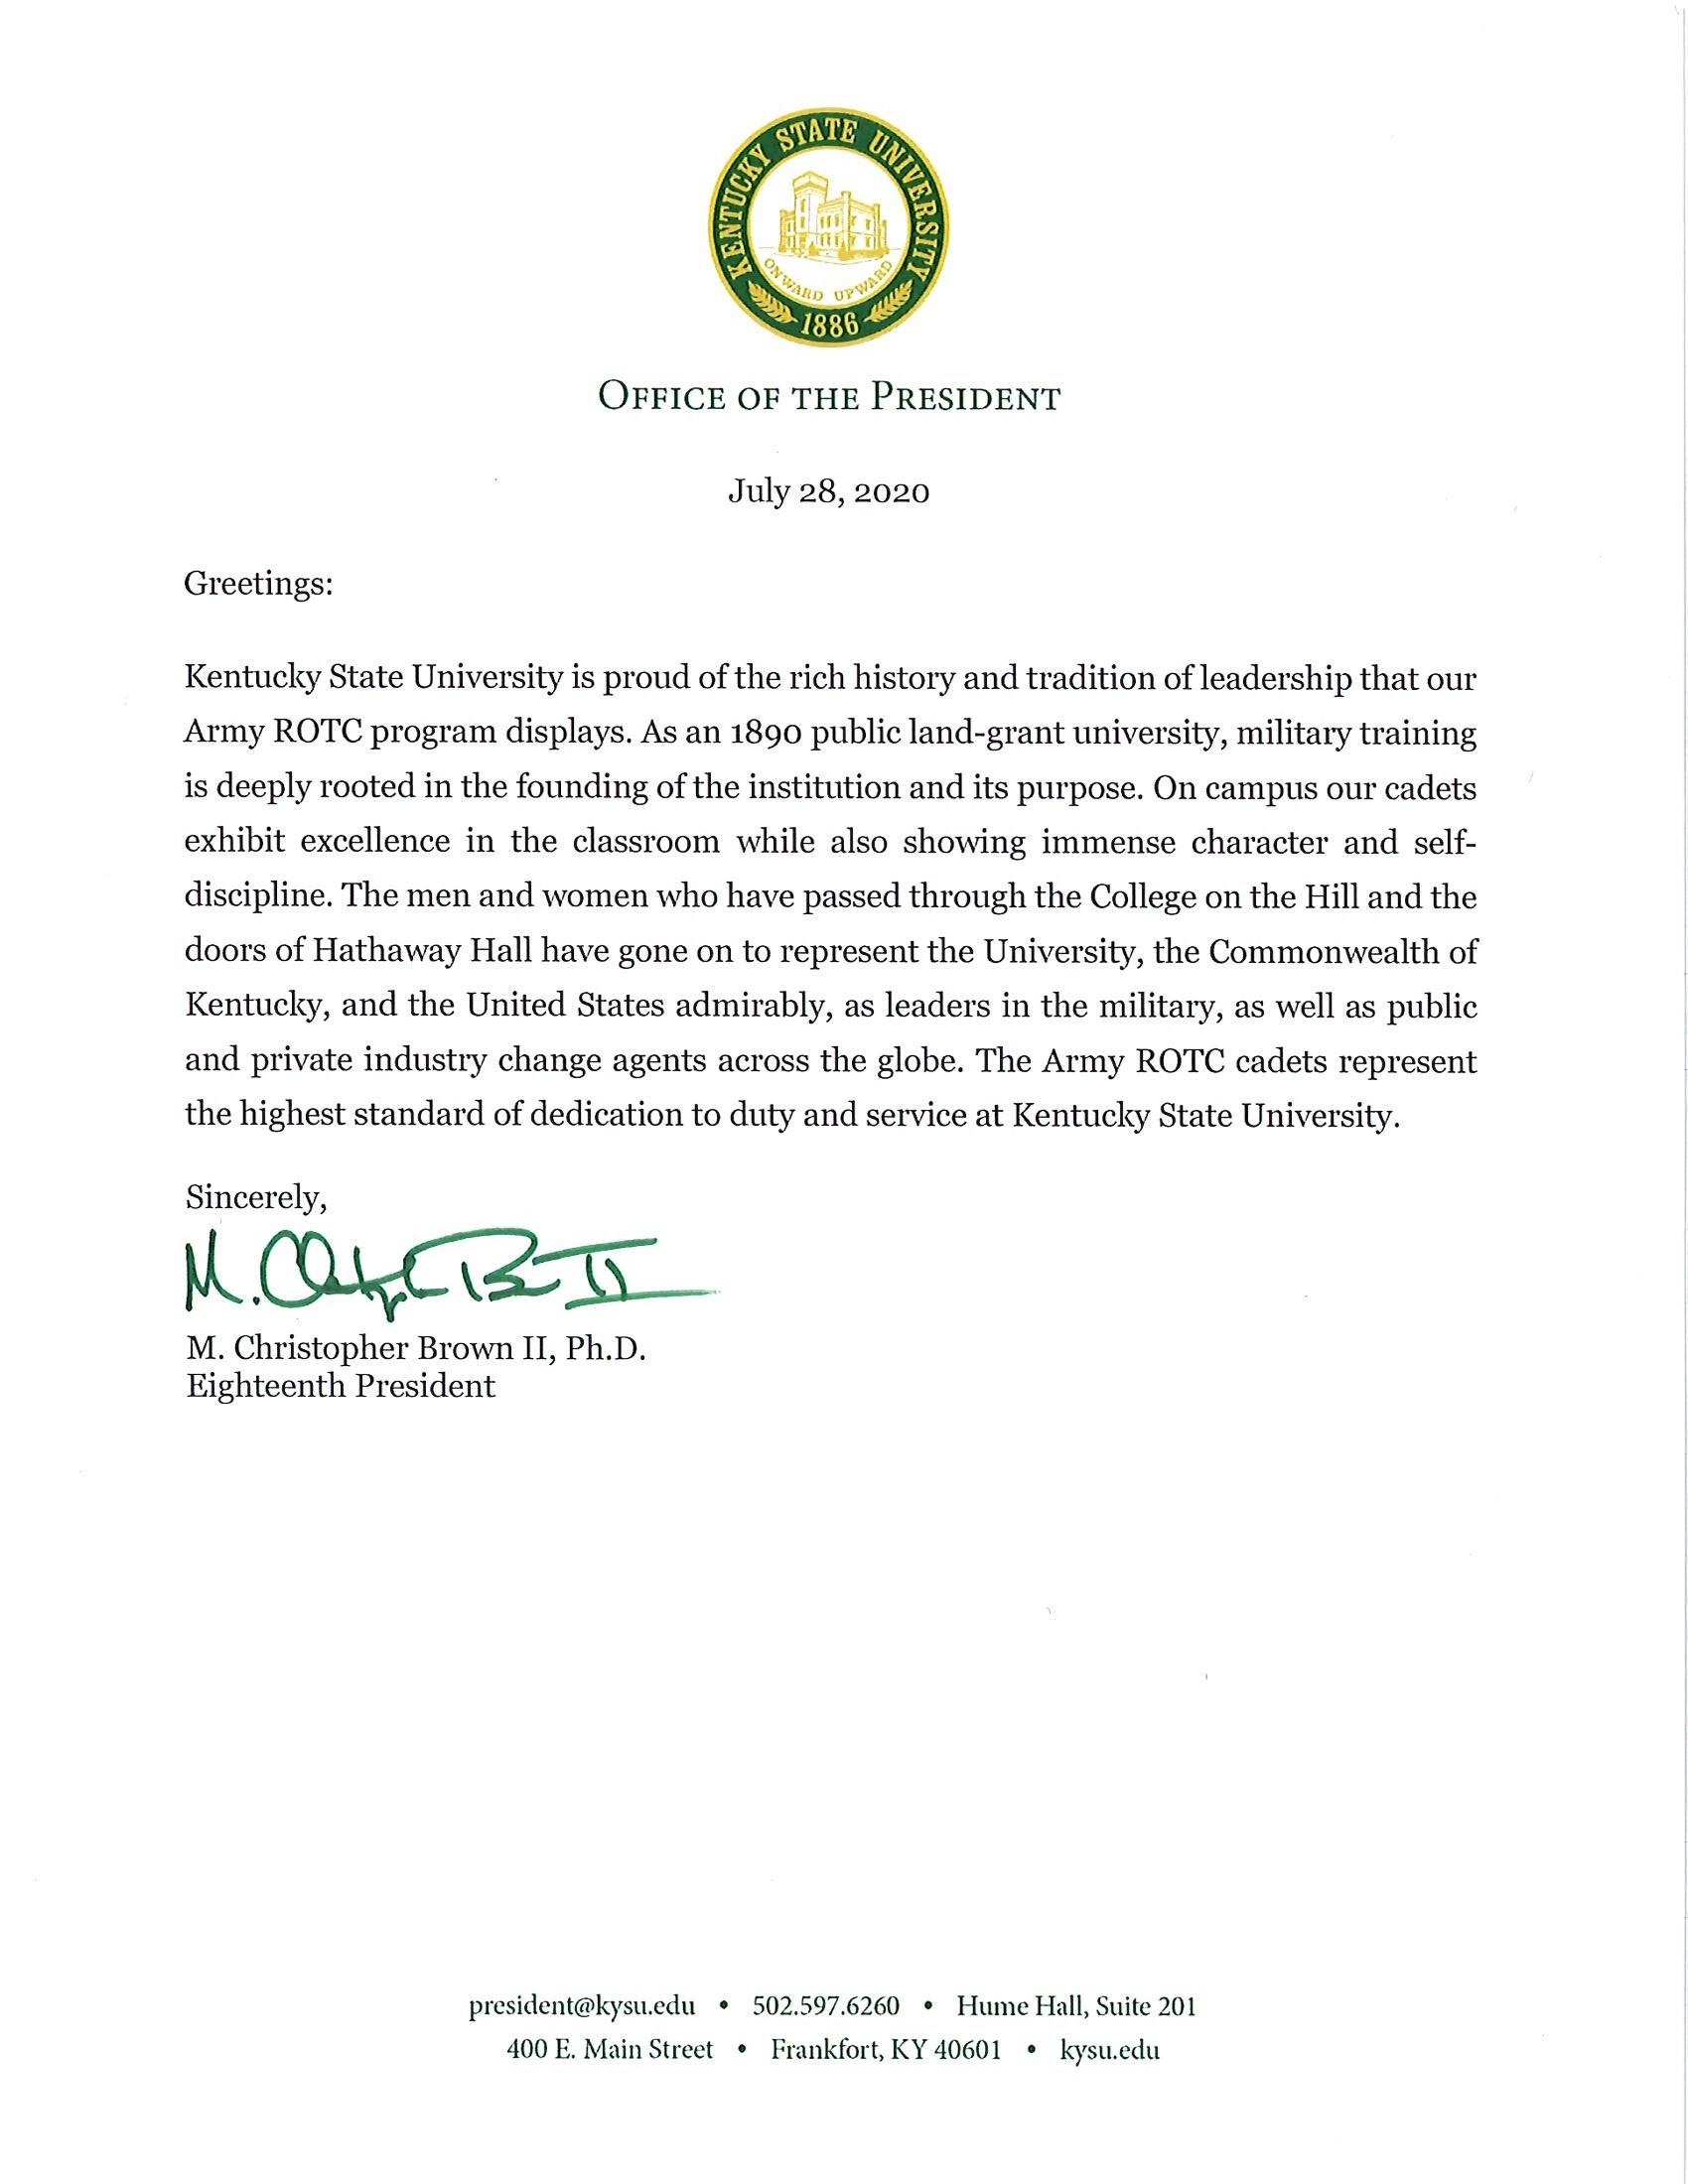 President's Welcome Letter